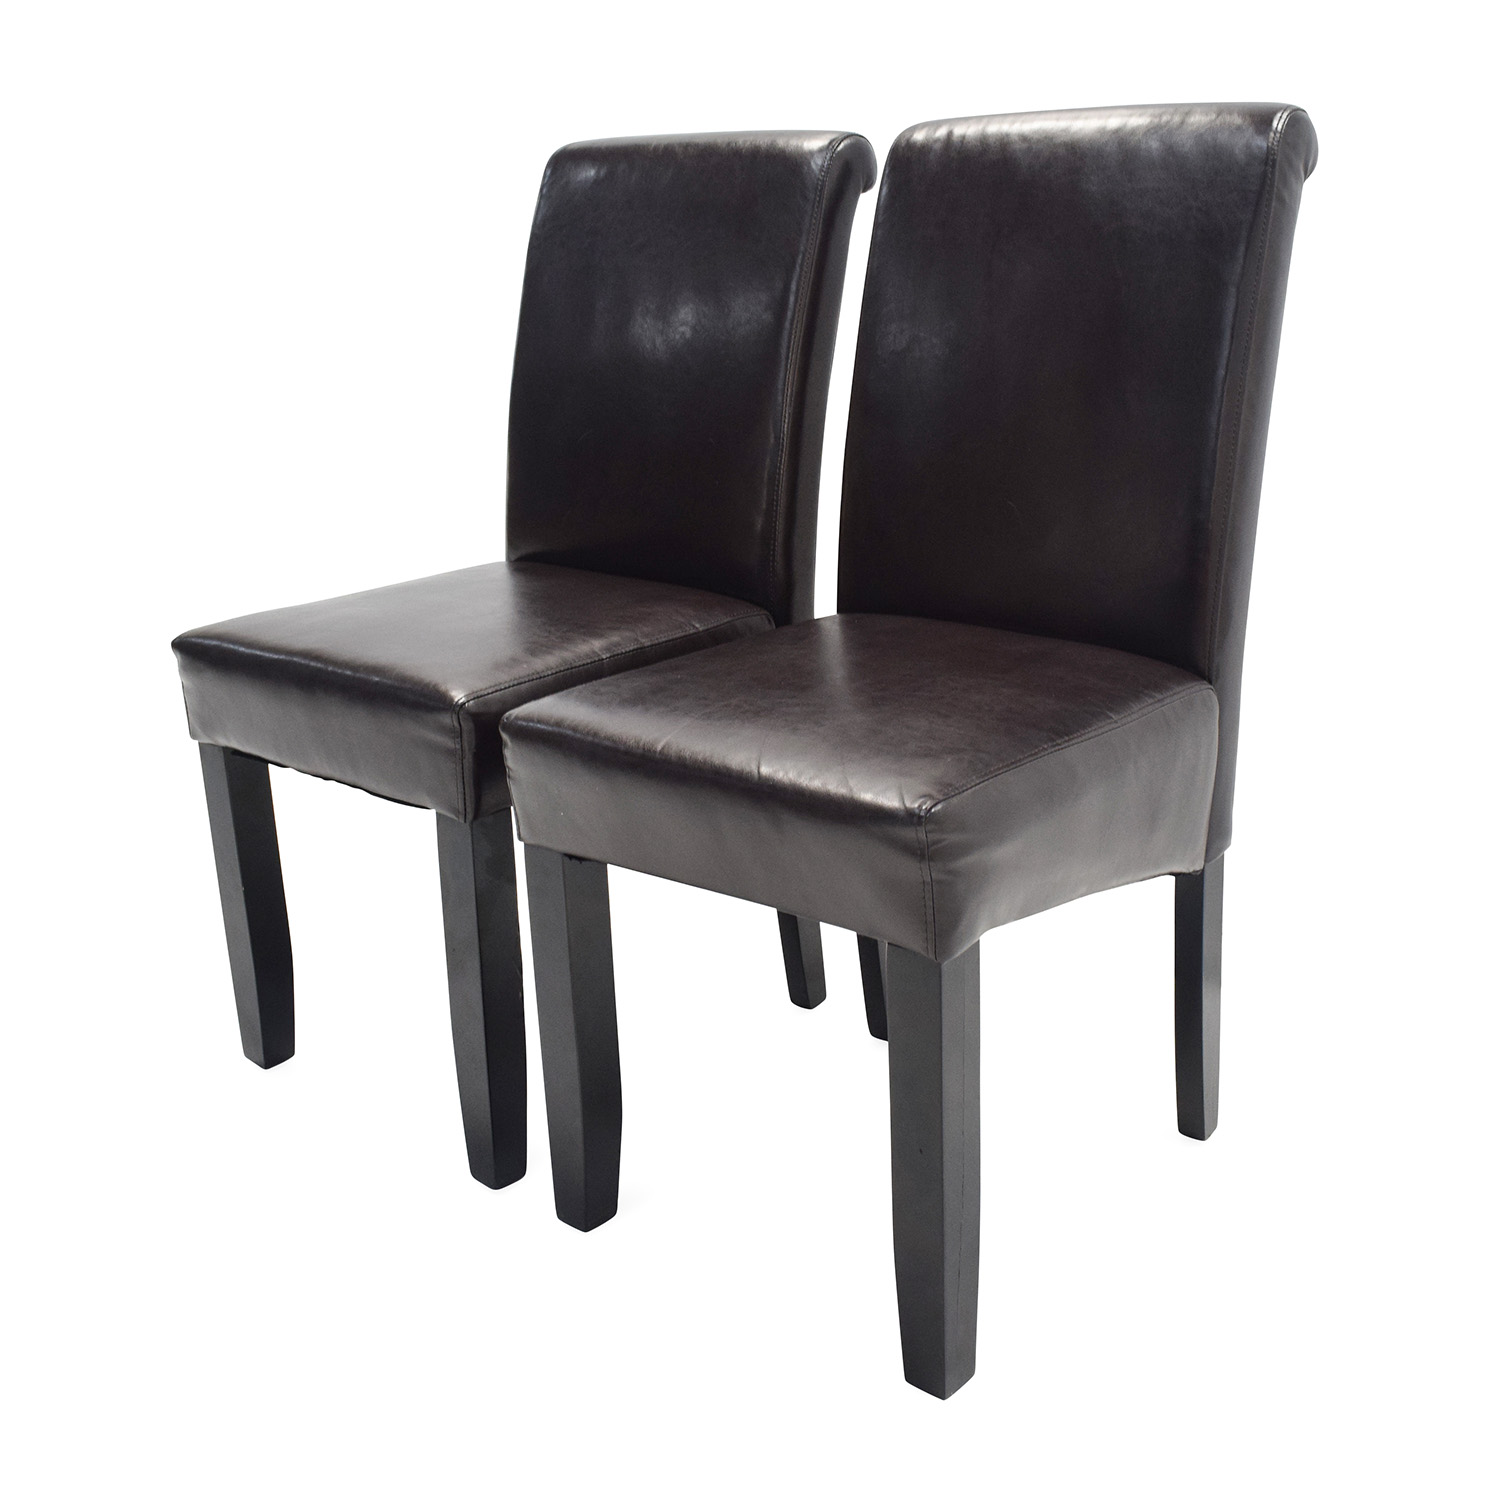 used restaurant chairs glider chair accessories 72 off unknown brand espresso leather dining